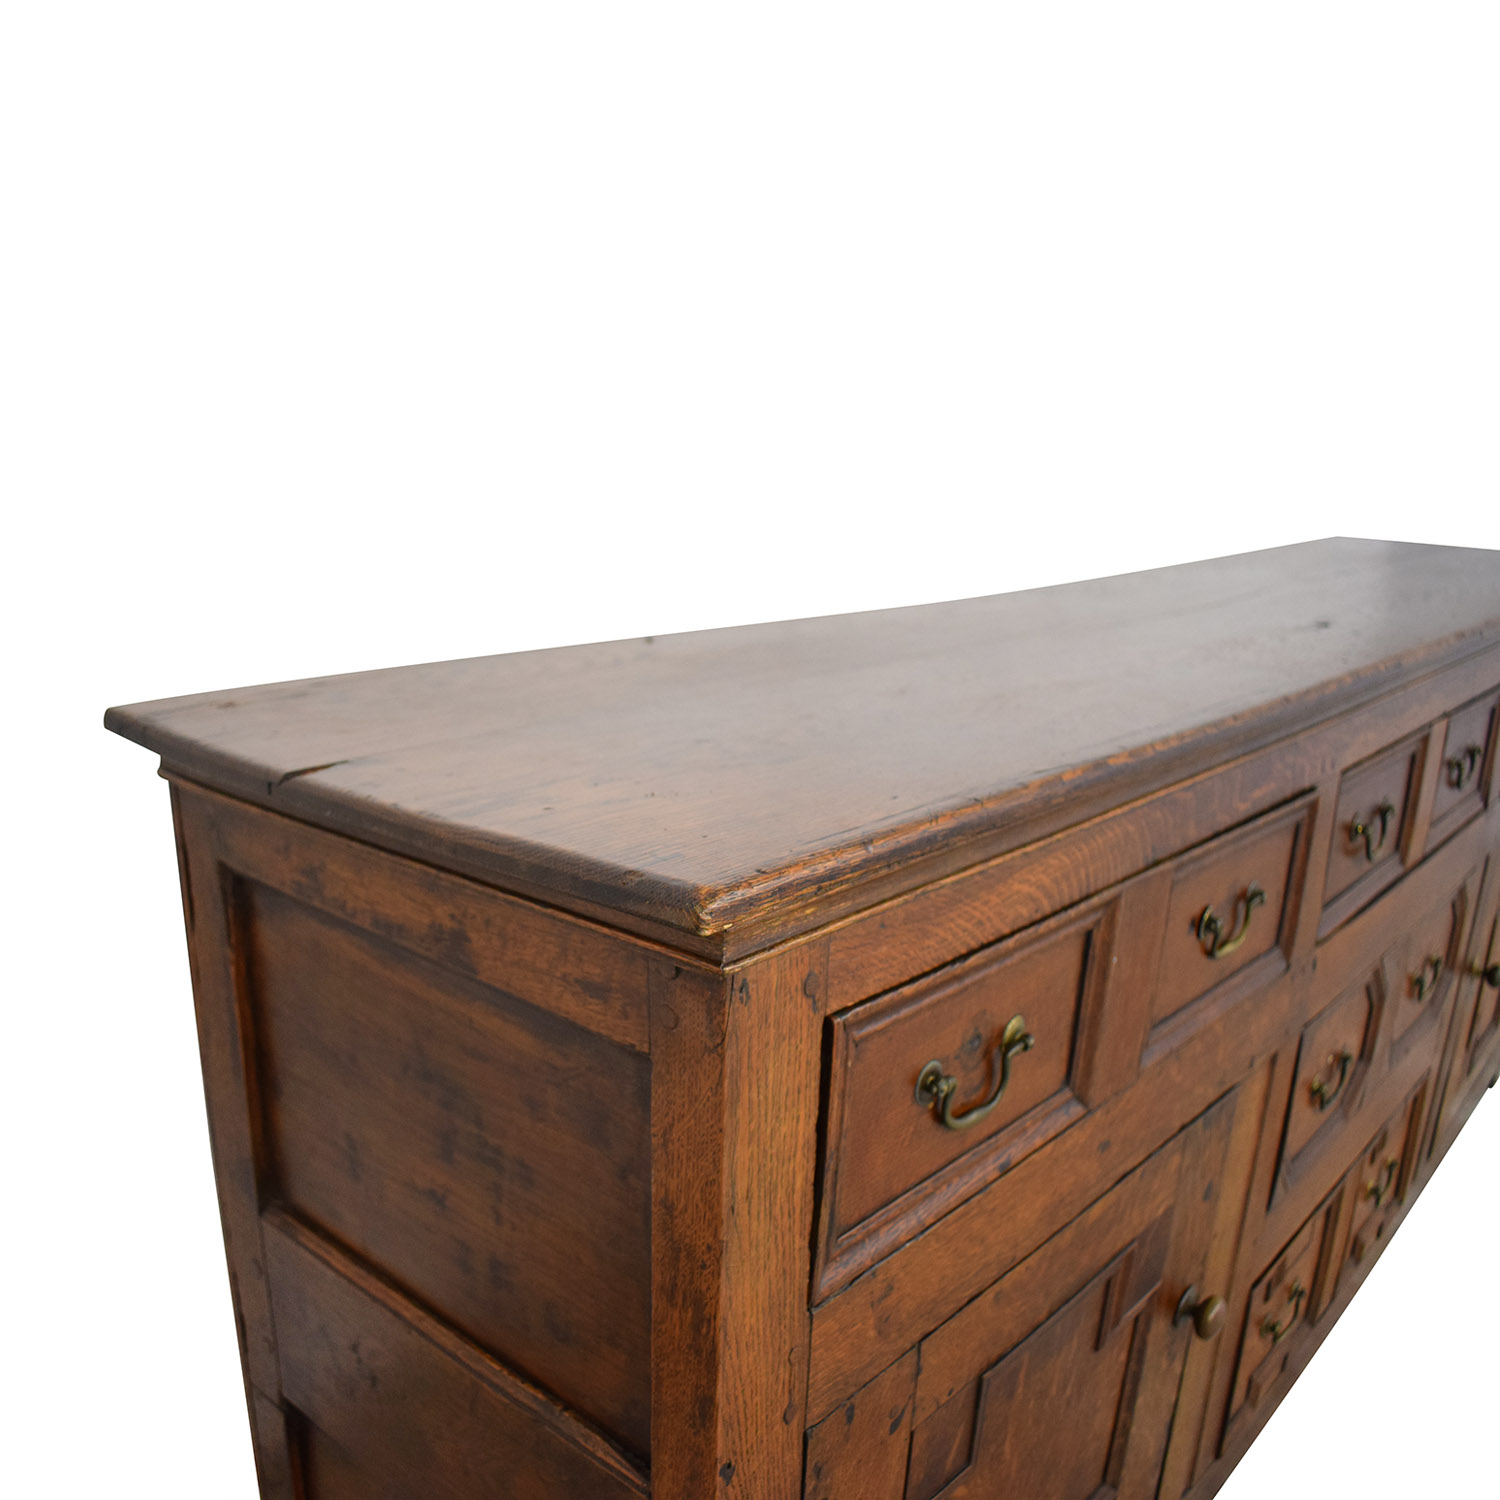 Antique Two-Cabinet Console Sideboard Cabinets & Sideboards